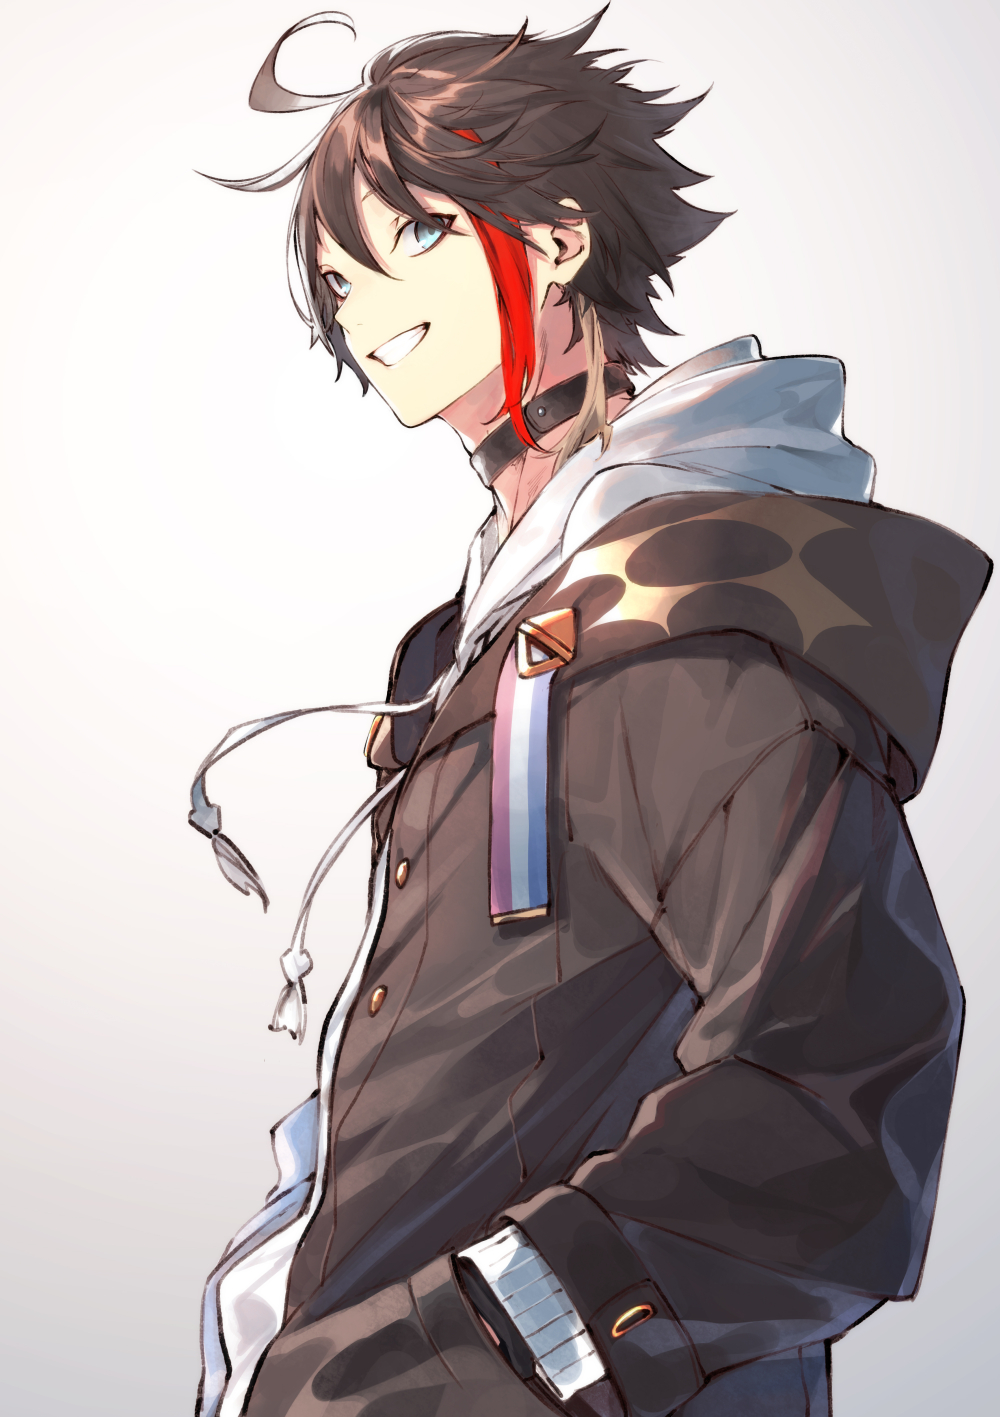 1boy ahoge bangs black_choker blue_eyes brown_hair brown_jacket choker commentary_request drawstring from_side gradient gradient_background grey_background grin hair_between_eyes hand_in_pocket highres hood hood_down hooded_jacket jacket kuwashima_rein long_sleeves looking_at_viewer looking_to_the_side male_focus multicolored_hair nijisanji saegusa_akina shiny shiny_hair smile solo standing streaked_hair white_background white_hoodie